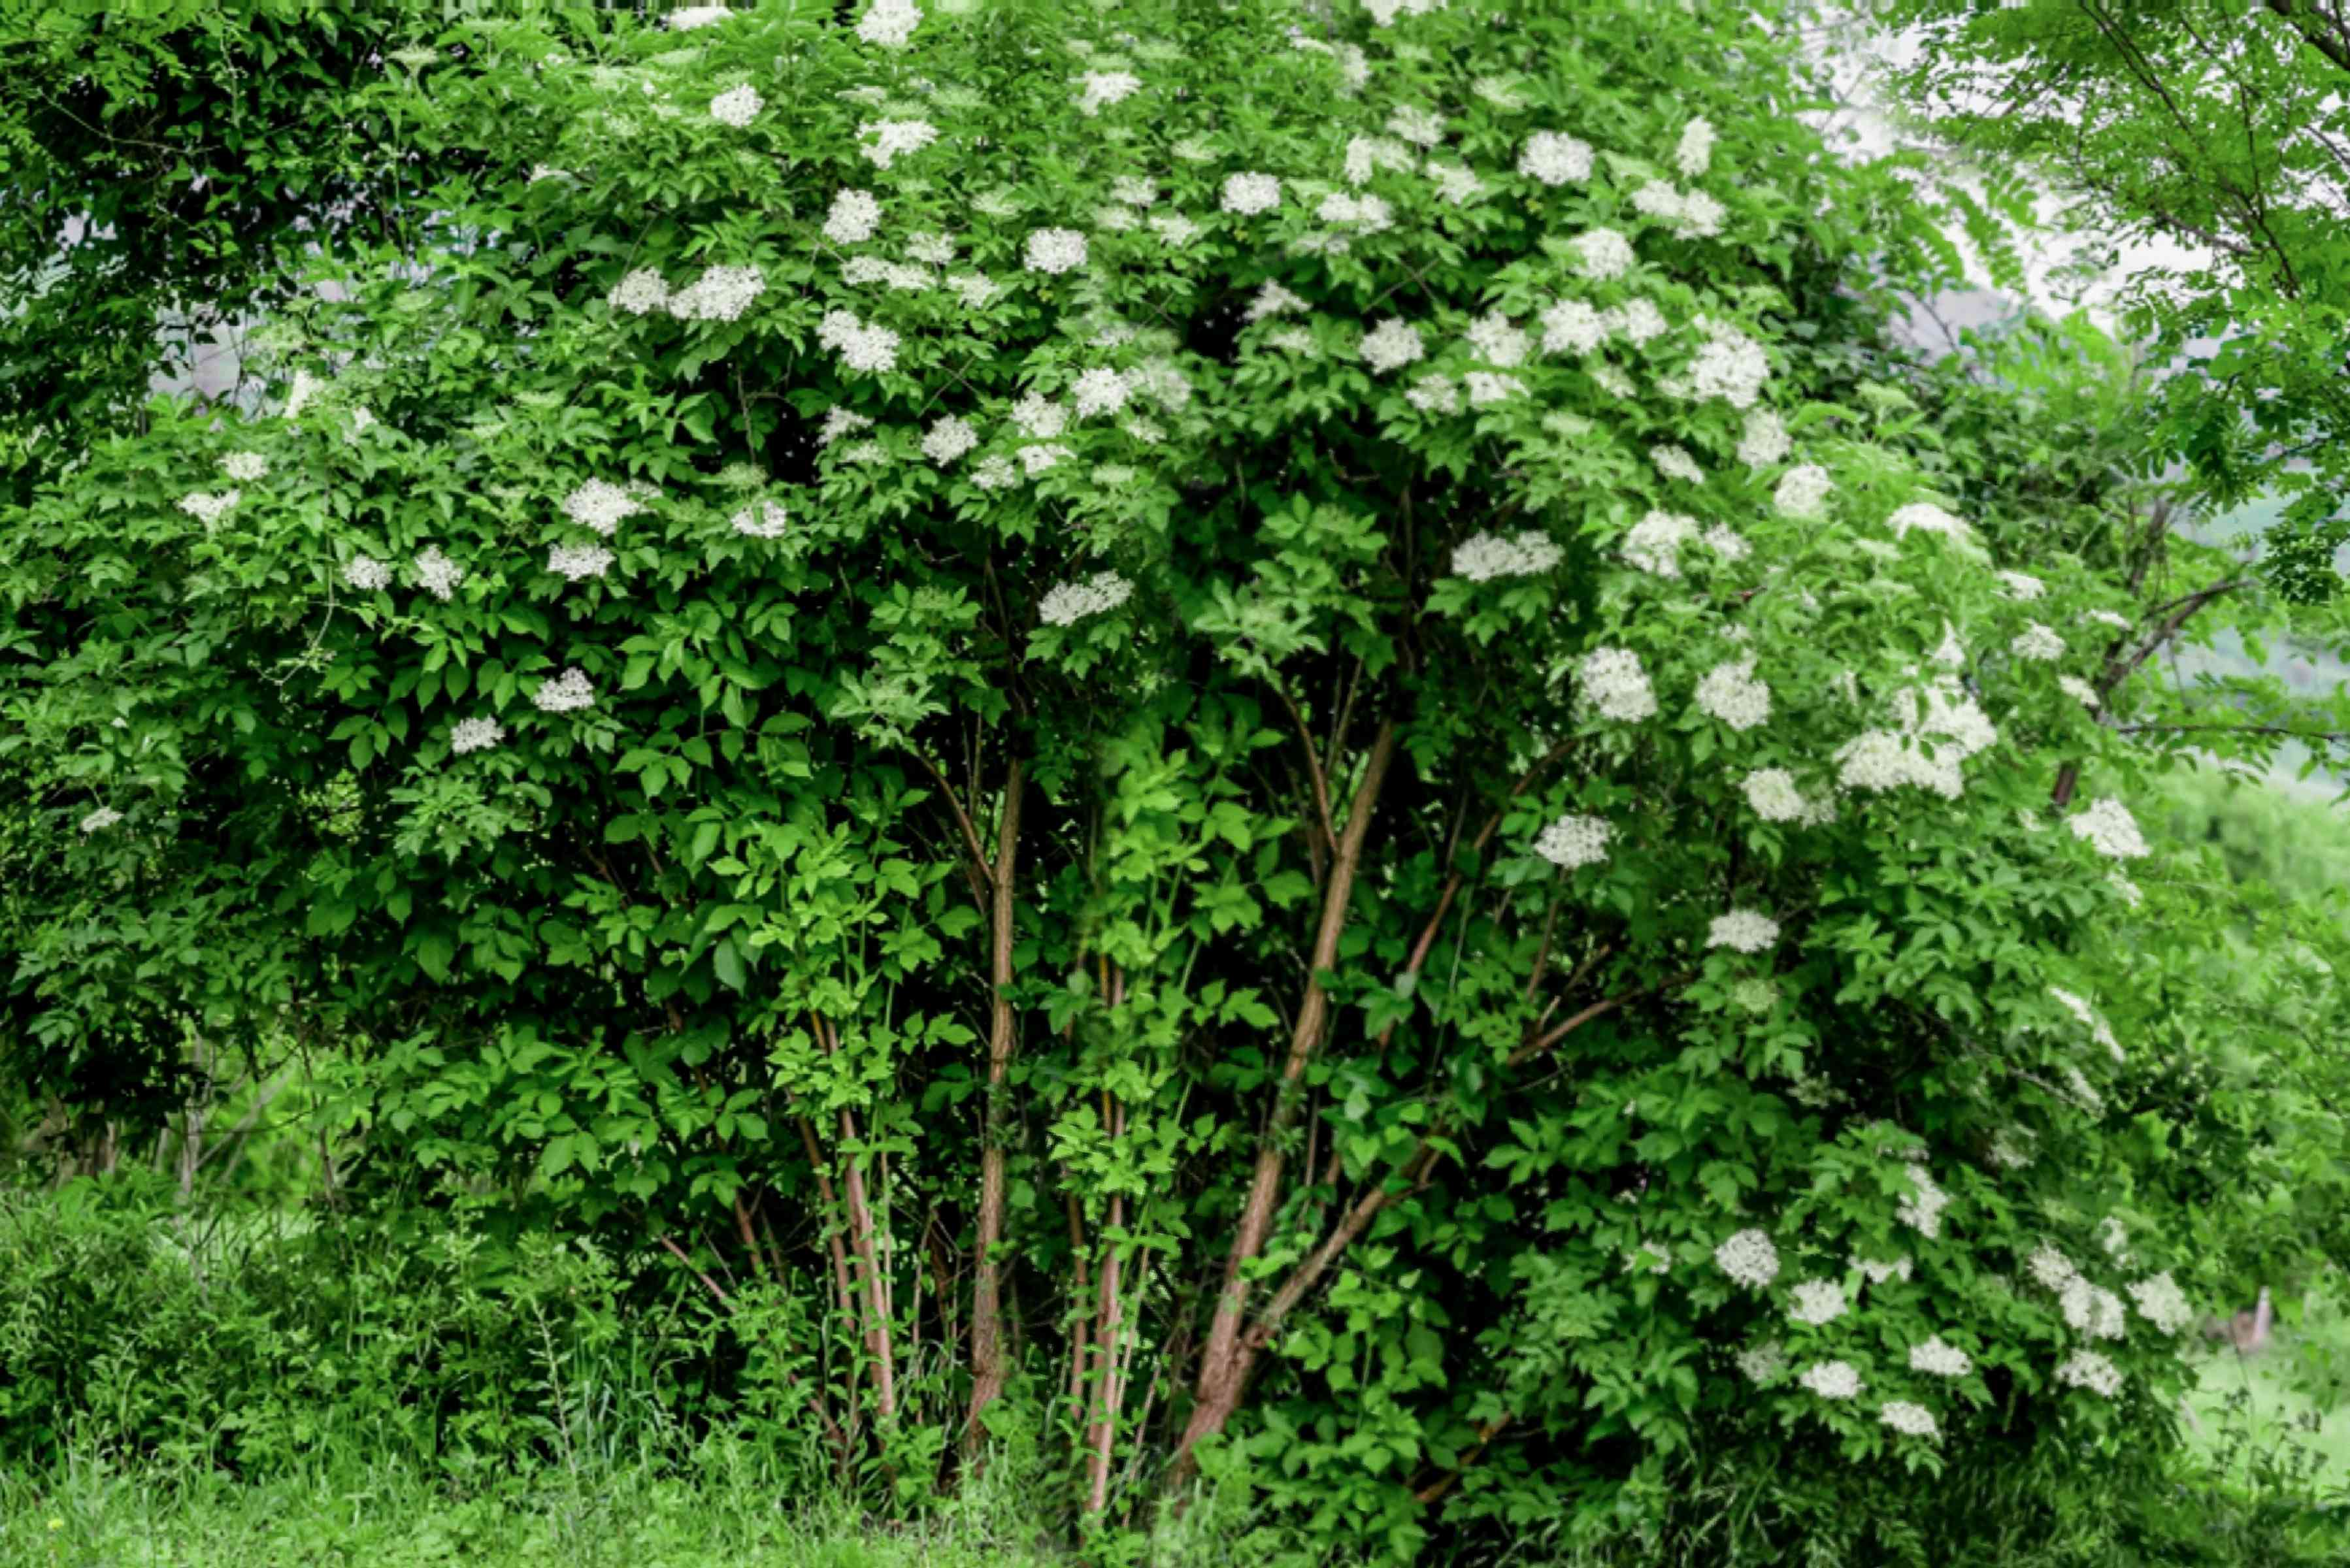 Common elderberry shrub with tall branches with bright white flowers and leaves hanging over the top